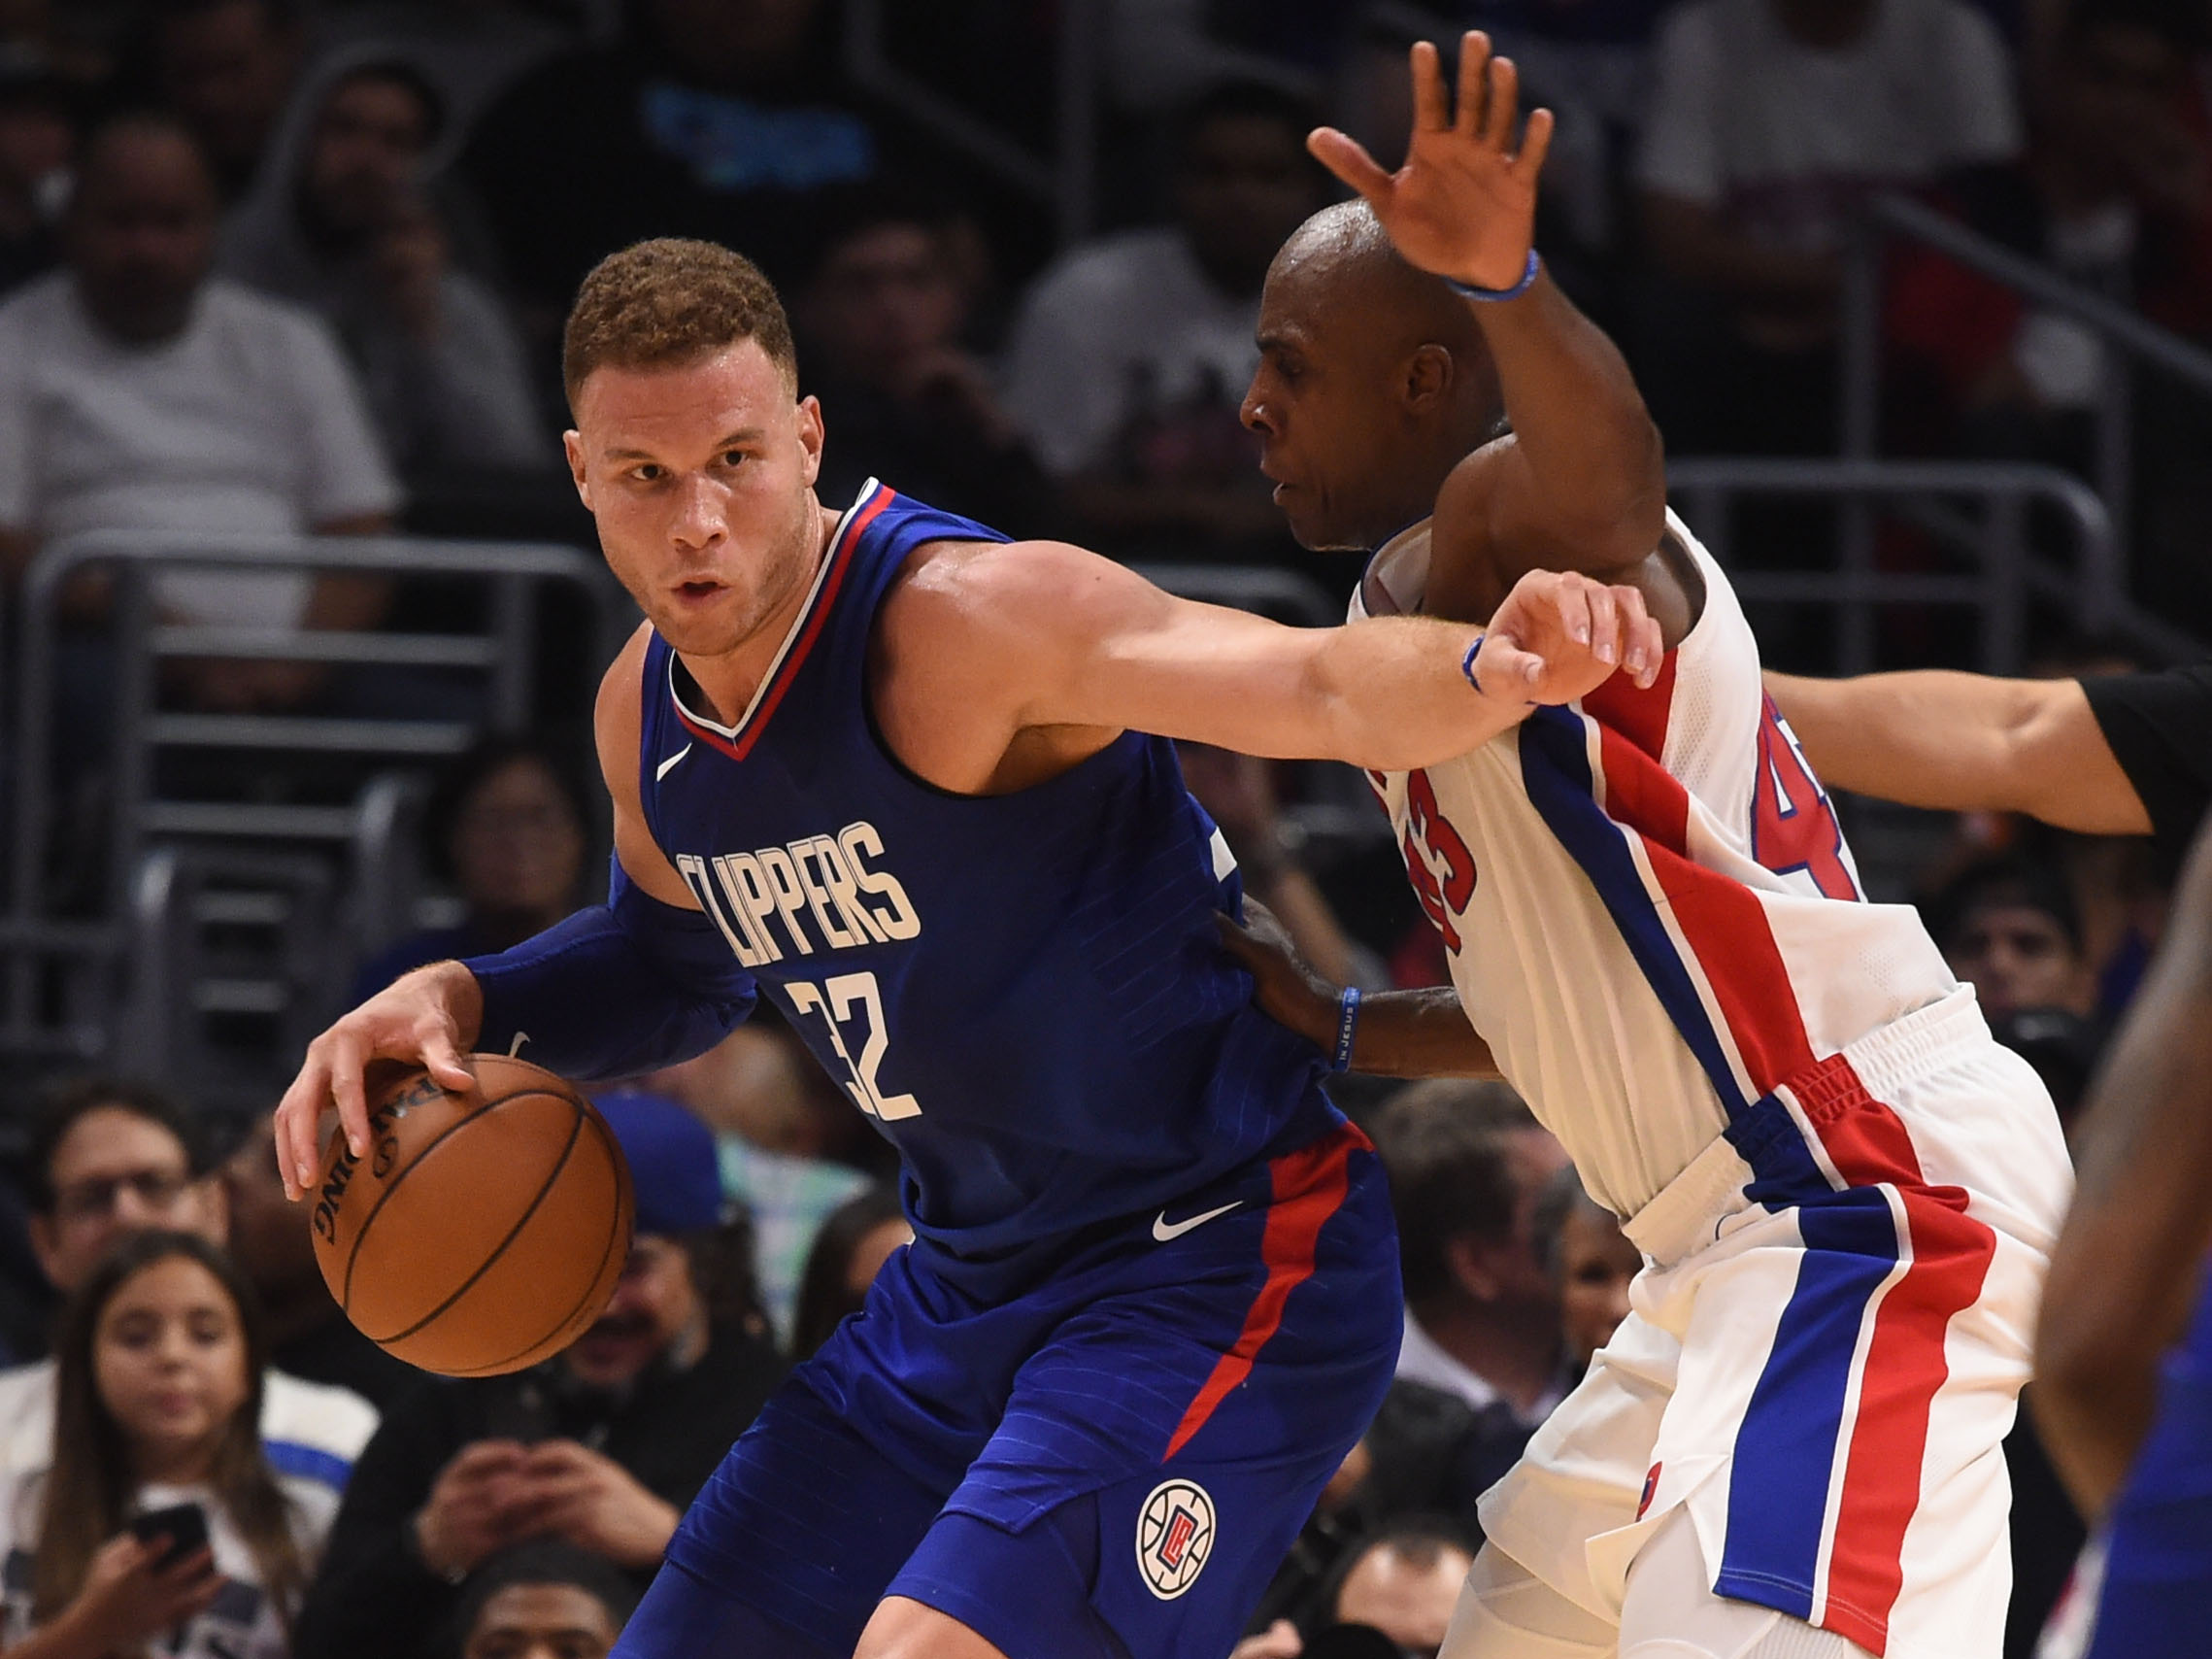 NBA: OCT 28 Pistons at Clippers